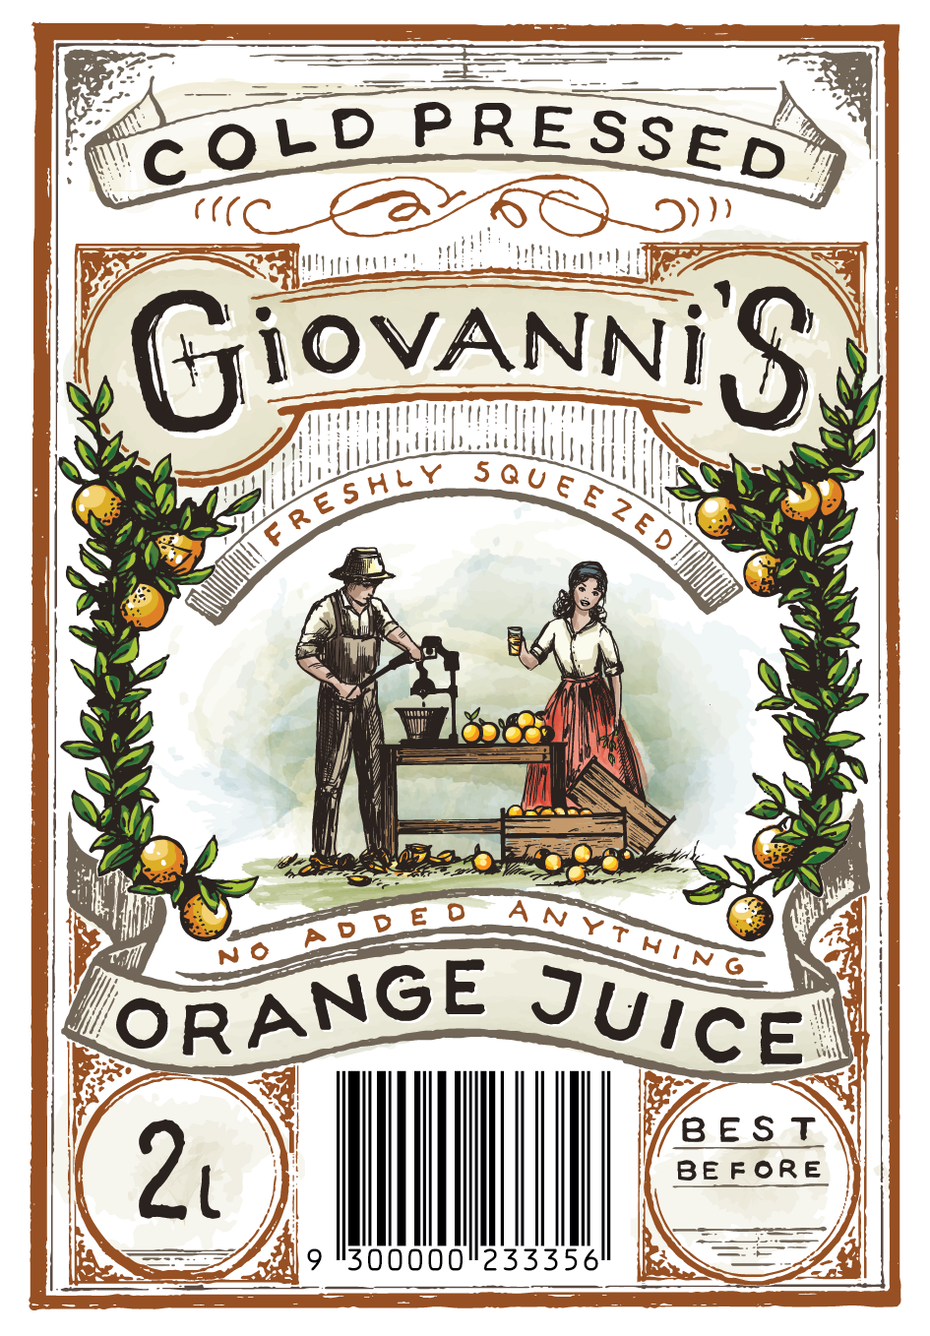 intricate vintage-inspired watercolor orange juice label